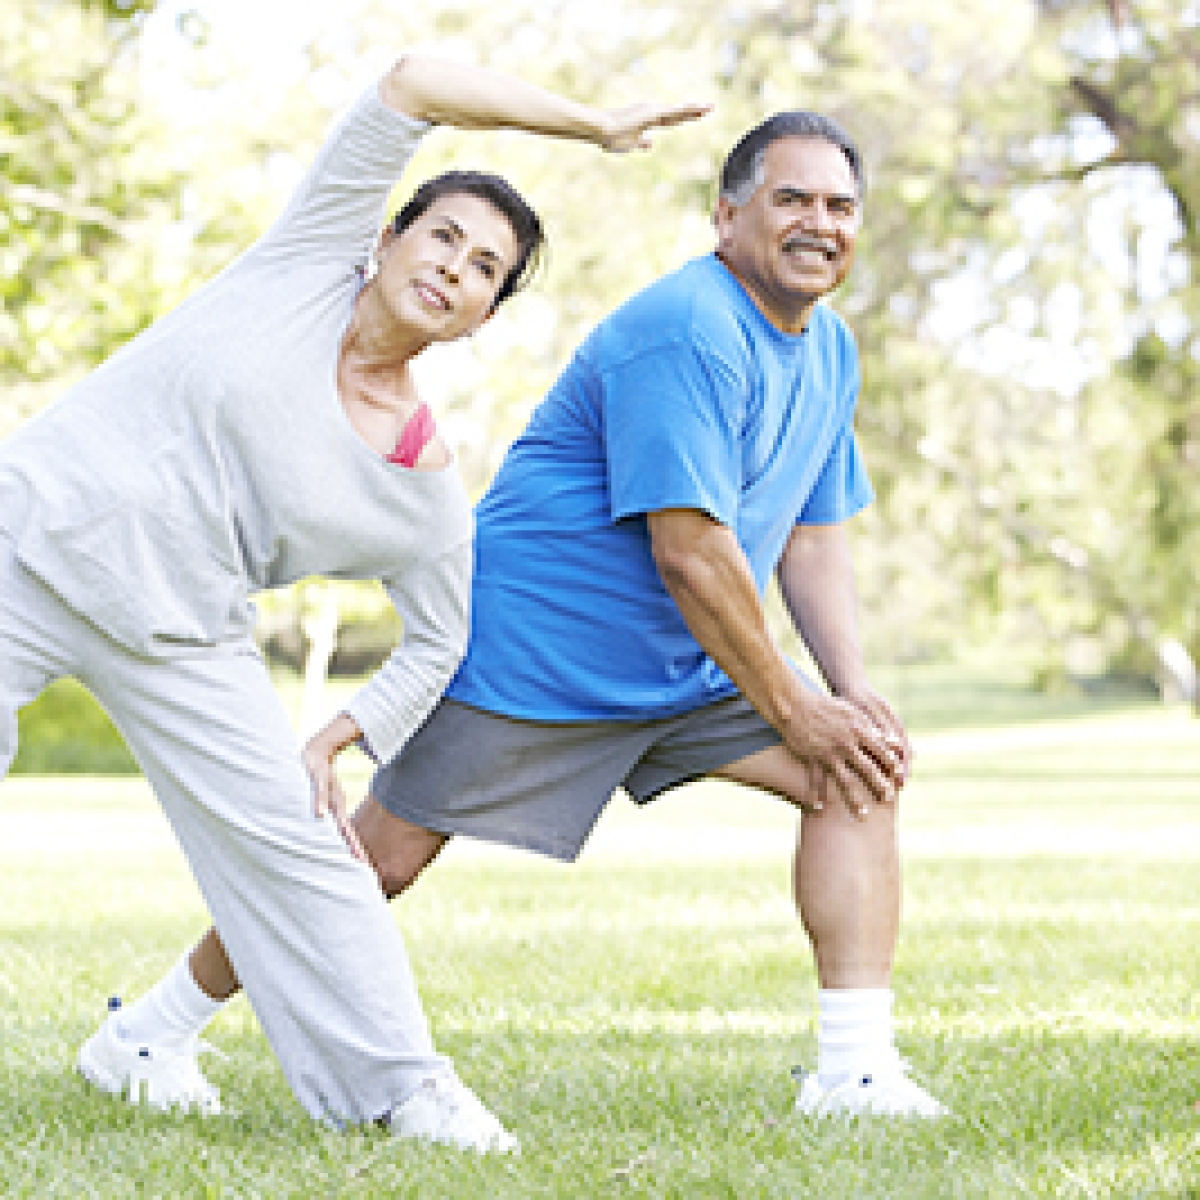 There is no age for exercise when it comes to heart